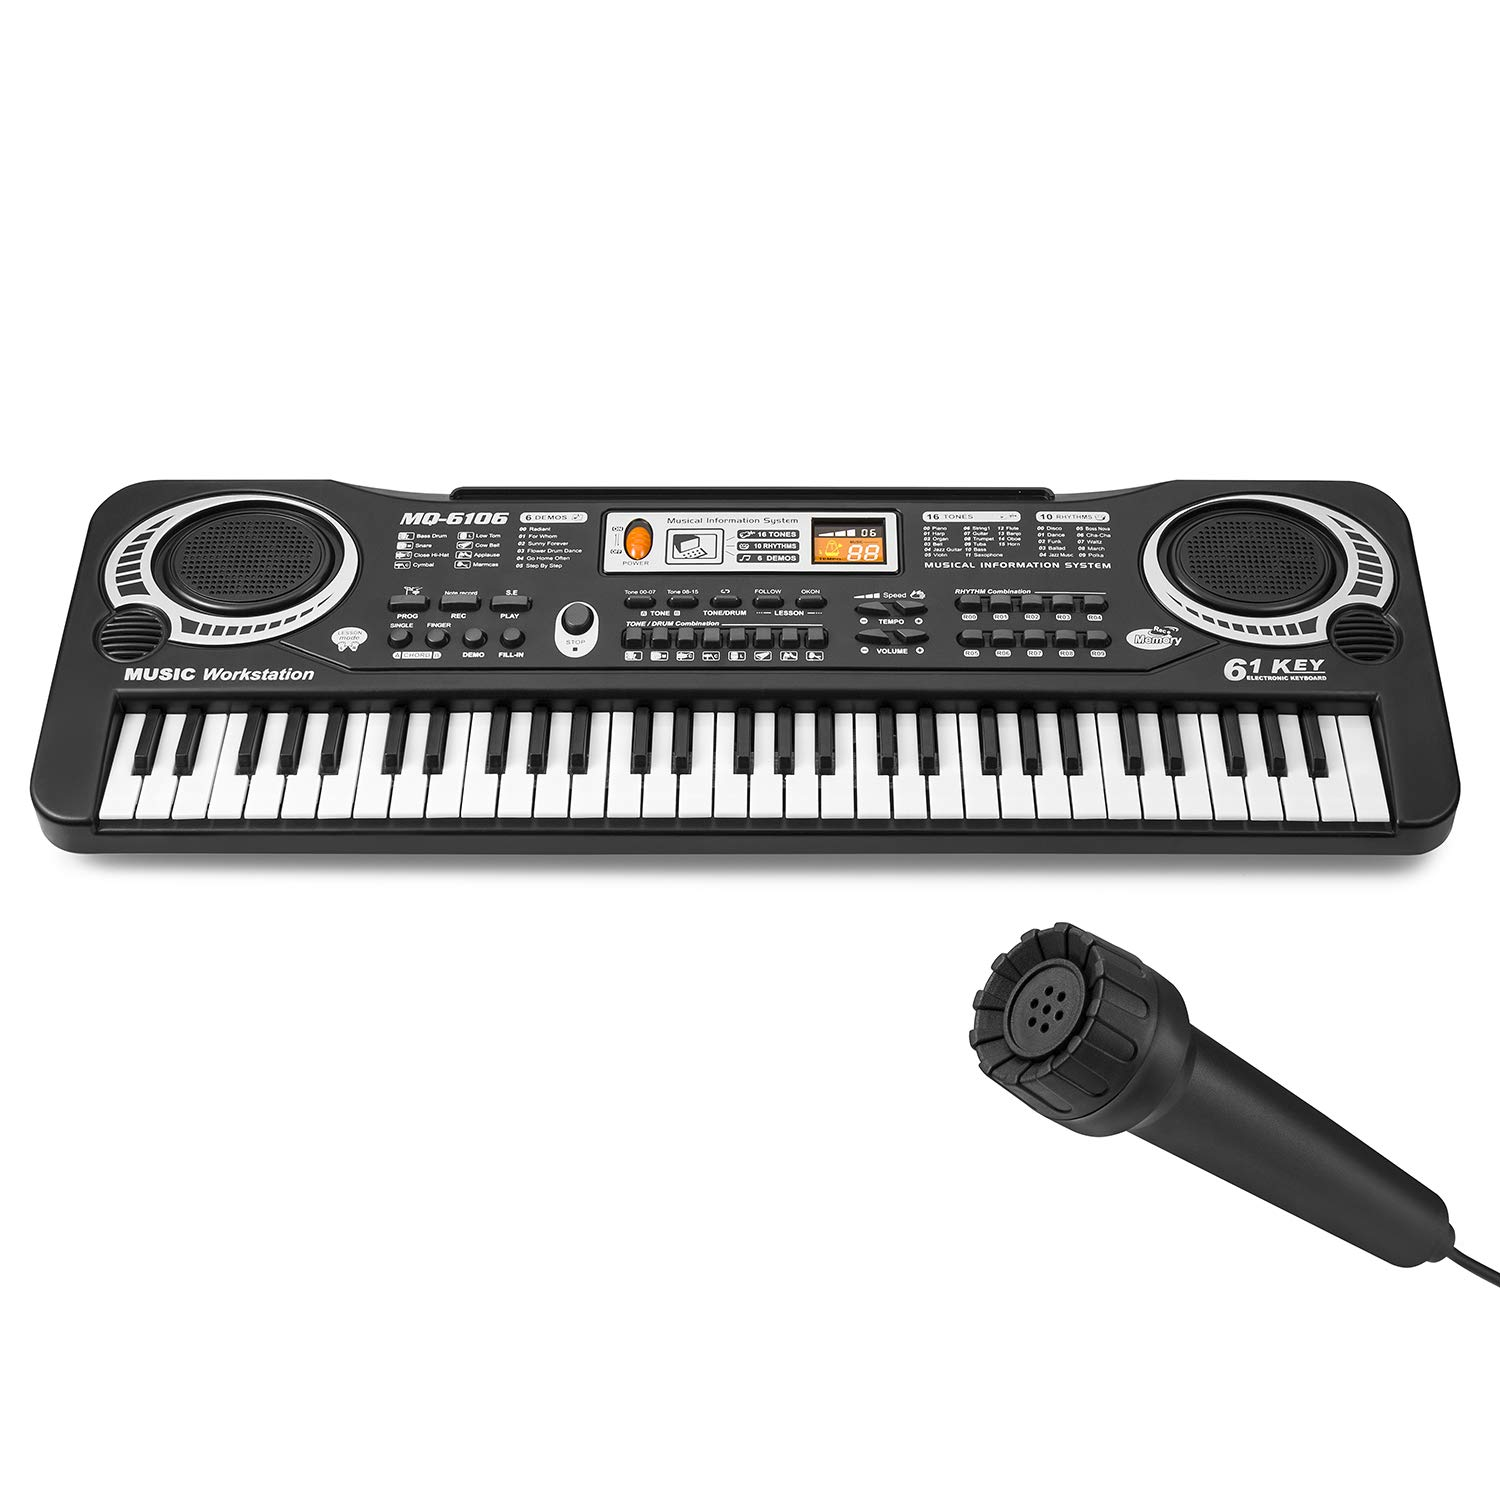 Lonian Kids Piano Keyboard 61 Keys, Piano Keyboard Toy Electronic Organ Musical Instrument Piano for Kids, Son, Daughter, Grandson, Granddaughter by Lonian